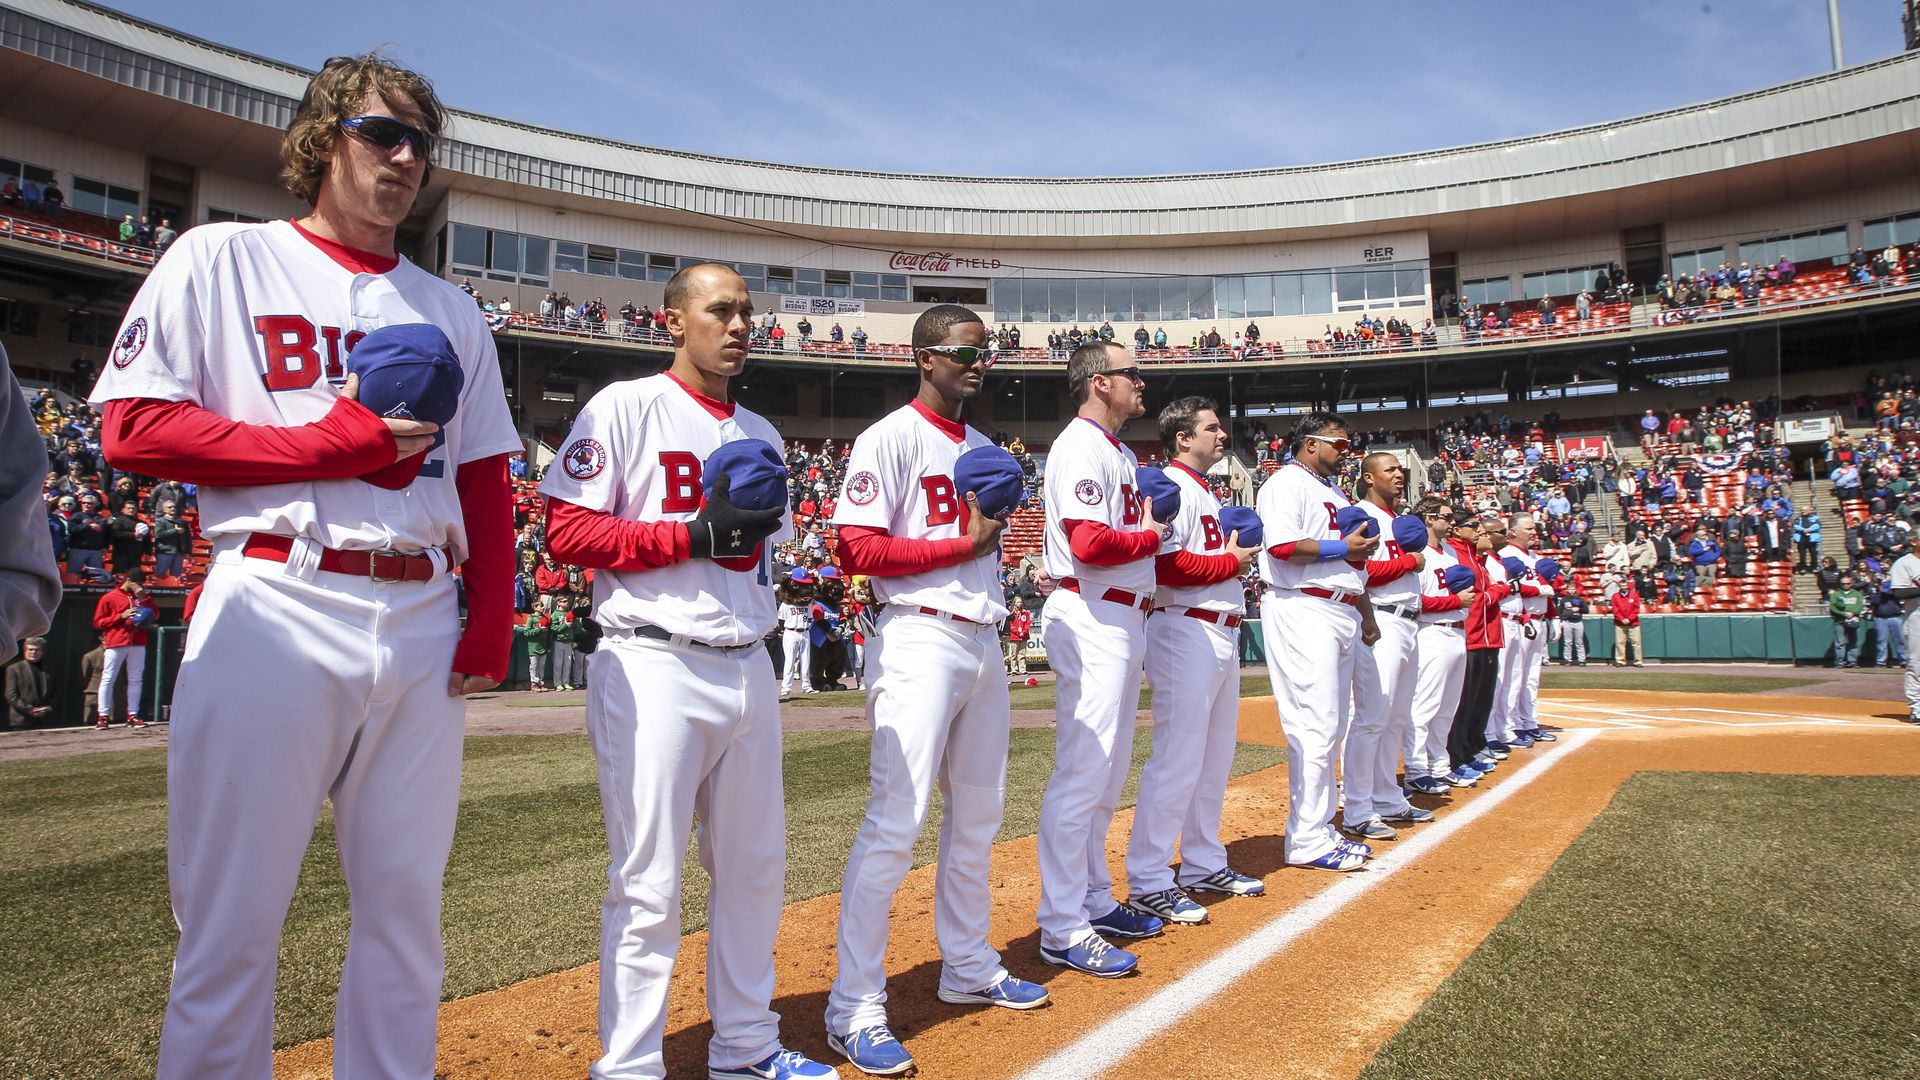 The Buffalo Bisons (Blue Jays Triple-A affiliate) on Opening Day last season. Photo: David Cooper/Toronto Star via Getty Images